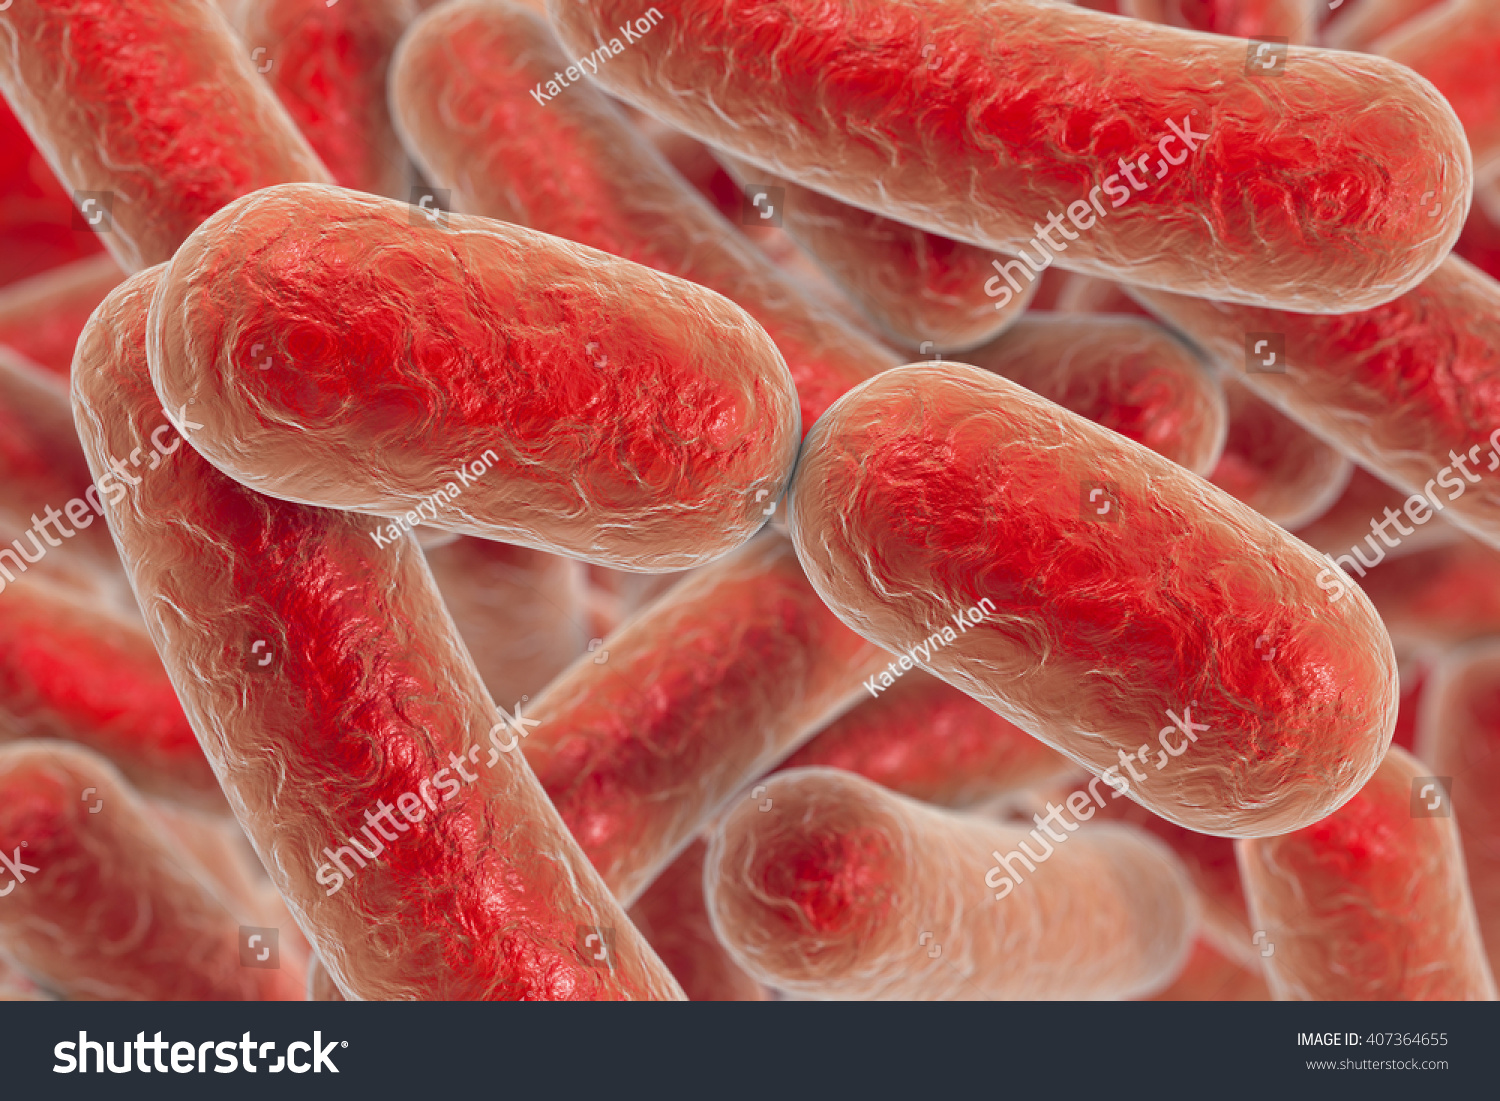 Bacterial infection Rod-shaped bacteria 3D illustration